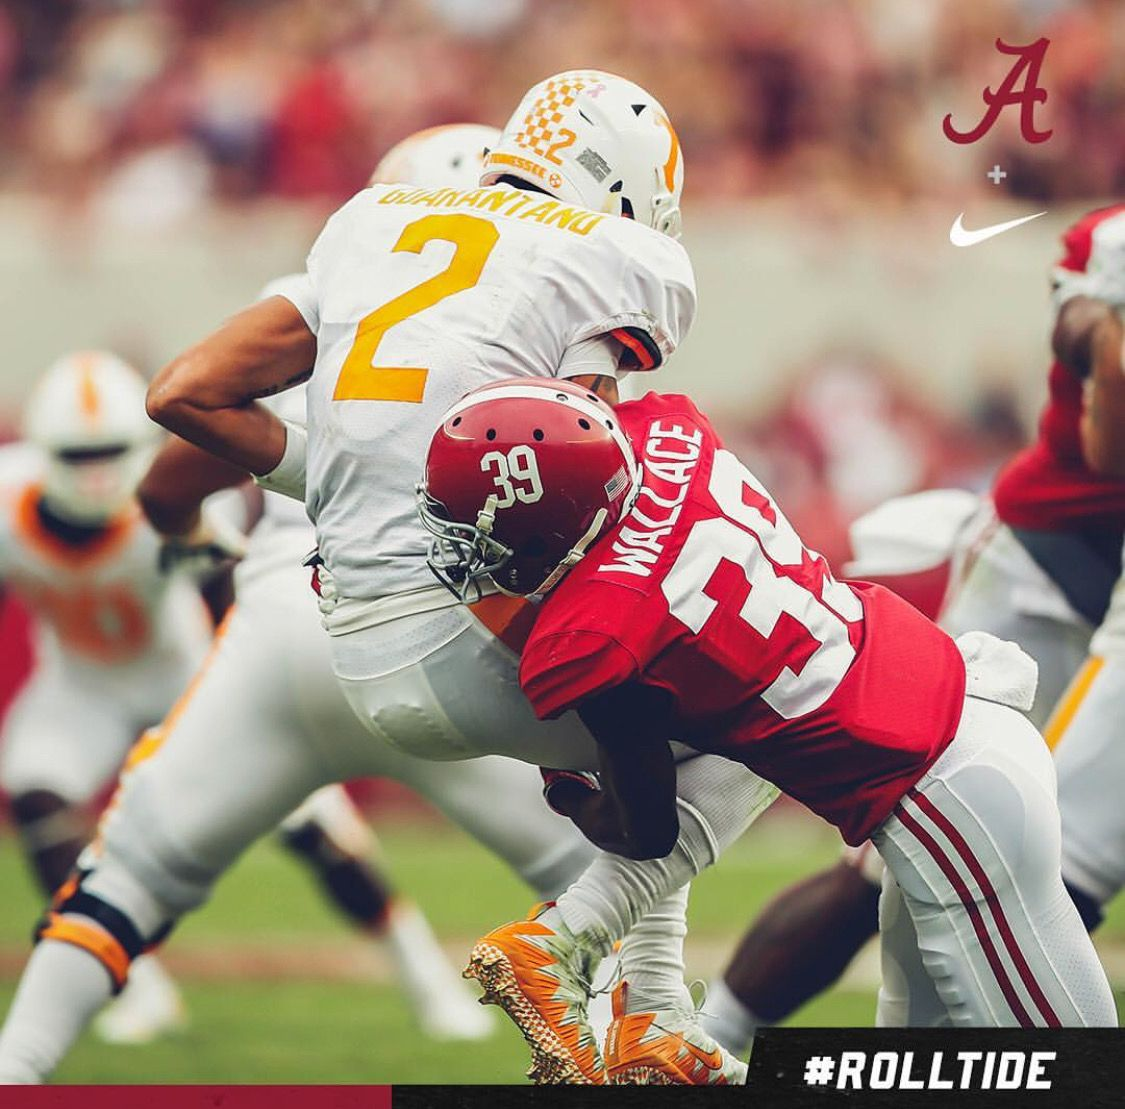 Levi Wallace With His First Career Sack Alabama 45 Tennessee 7 Graphic Via Alabamafbl On Instagram Alabama Alabama Crimson Tide Alabama Football Alabama